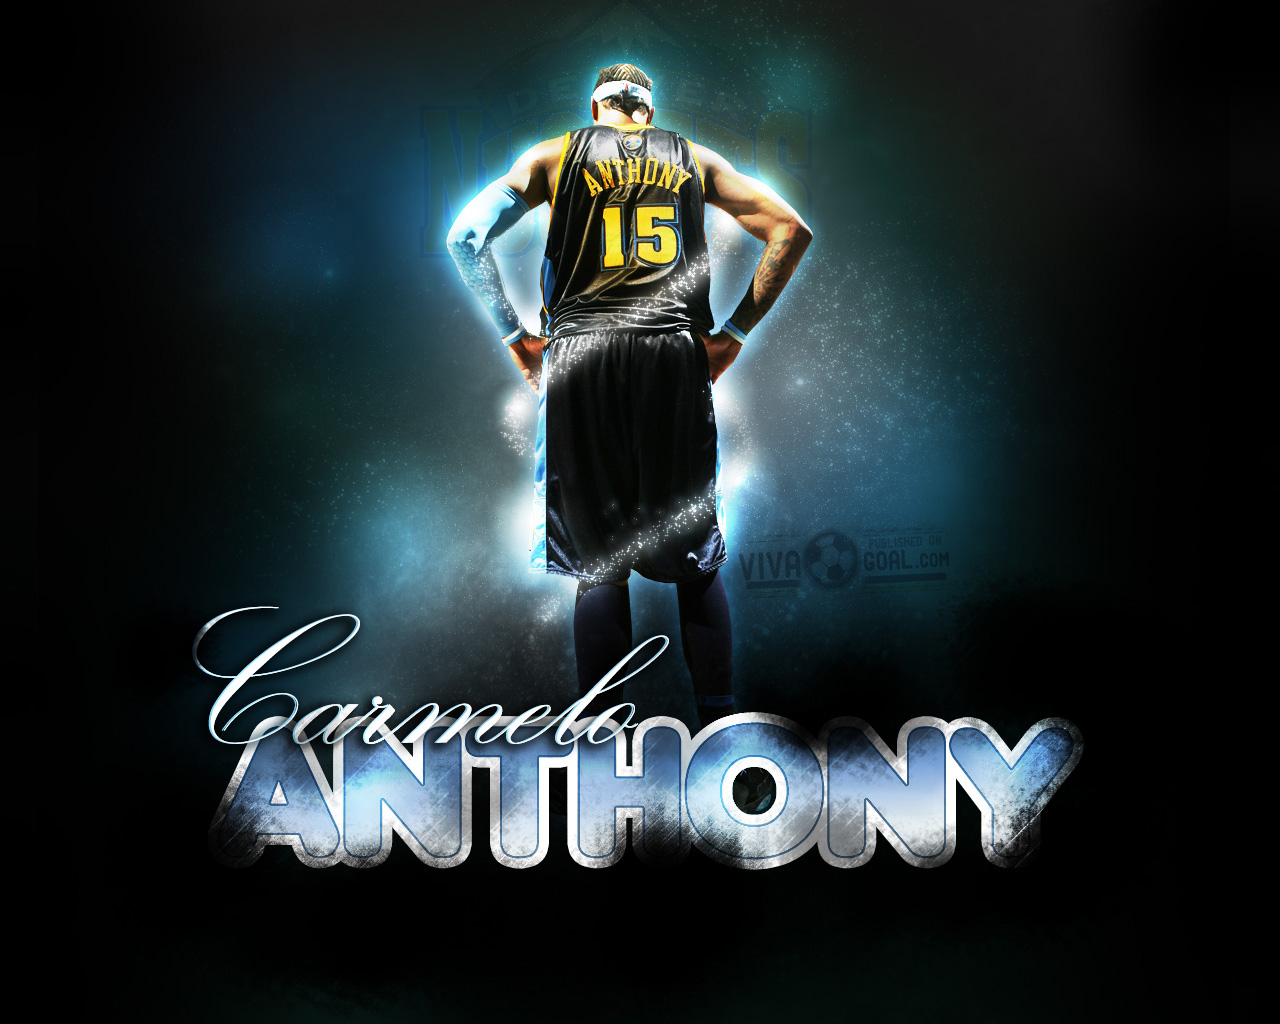 FunMozar Best Basketball Wallpapers 1280x1024